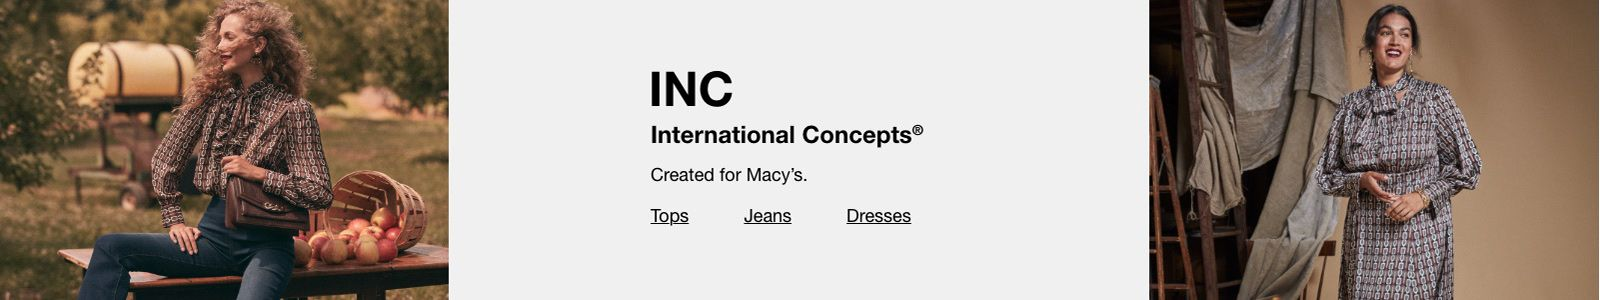 Inc, International Concepts, Created for Macy's, Tops, Jeans, Dresses